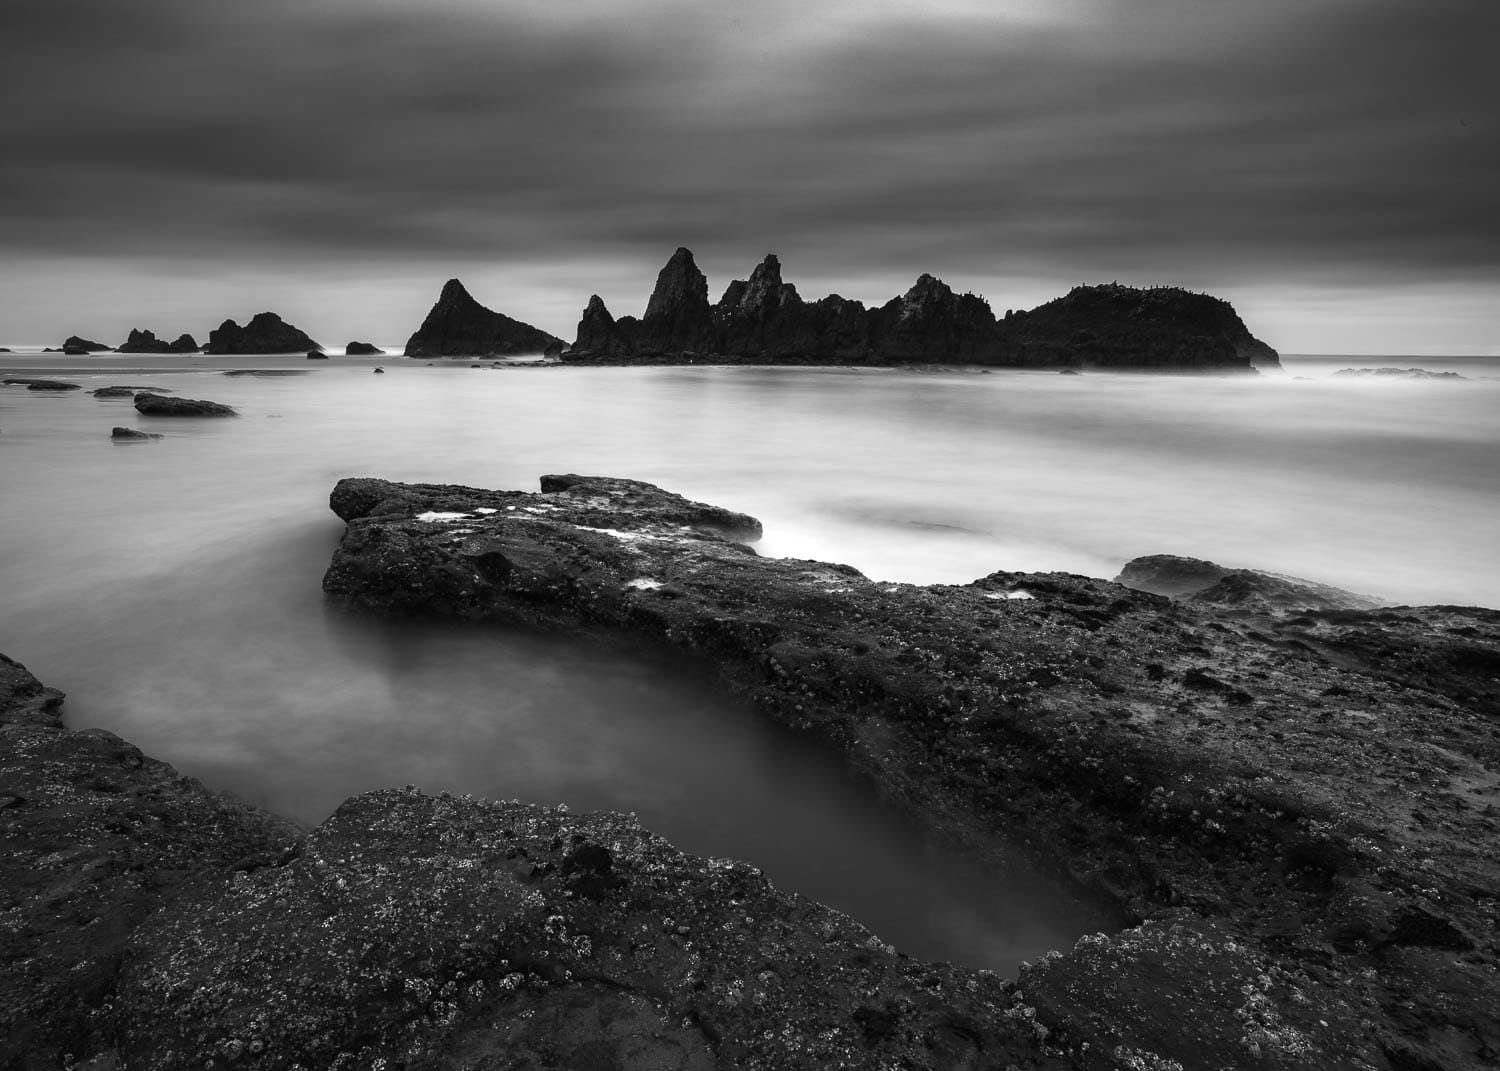 Photo Workshop location along the rocky coast in Oregon